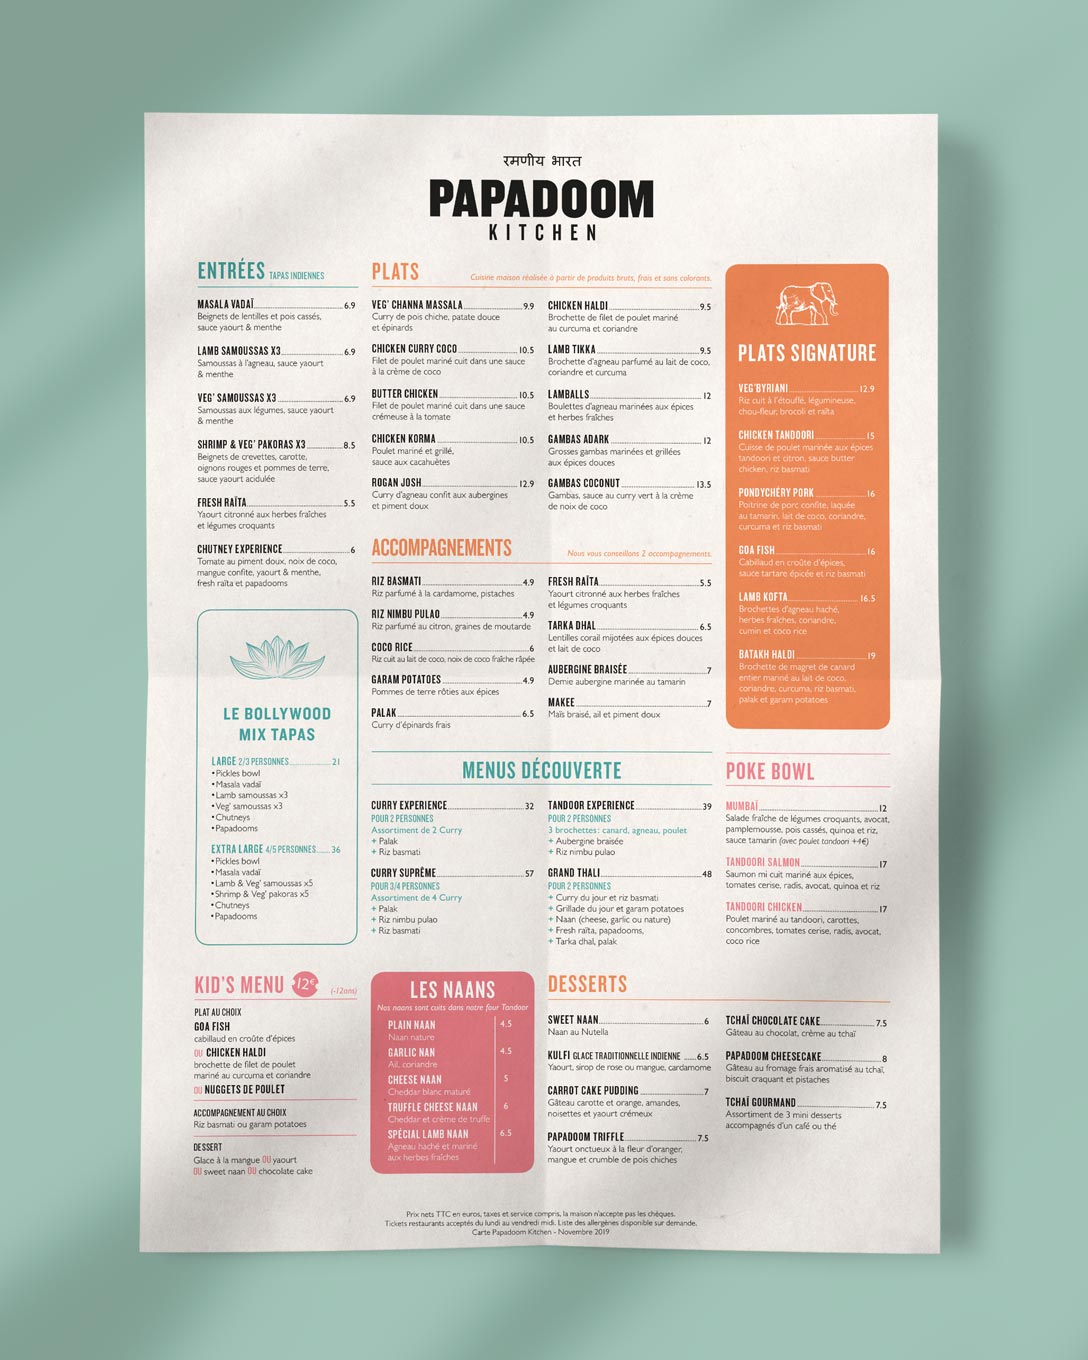 cristallemaille-papadoom-menu-indianfood